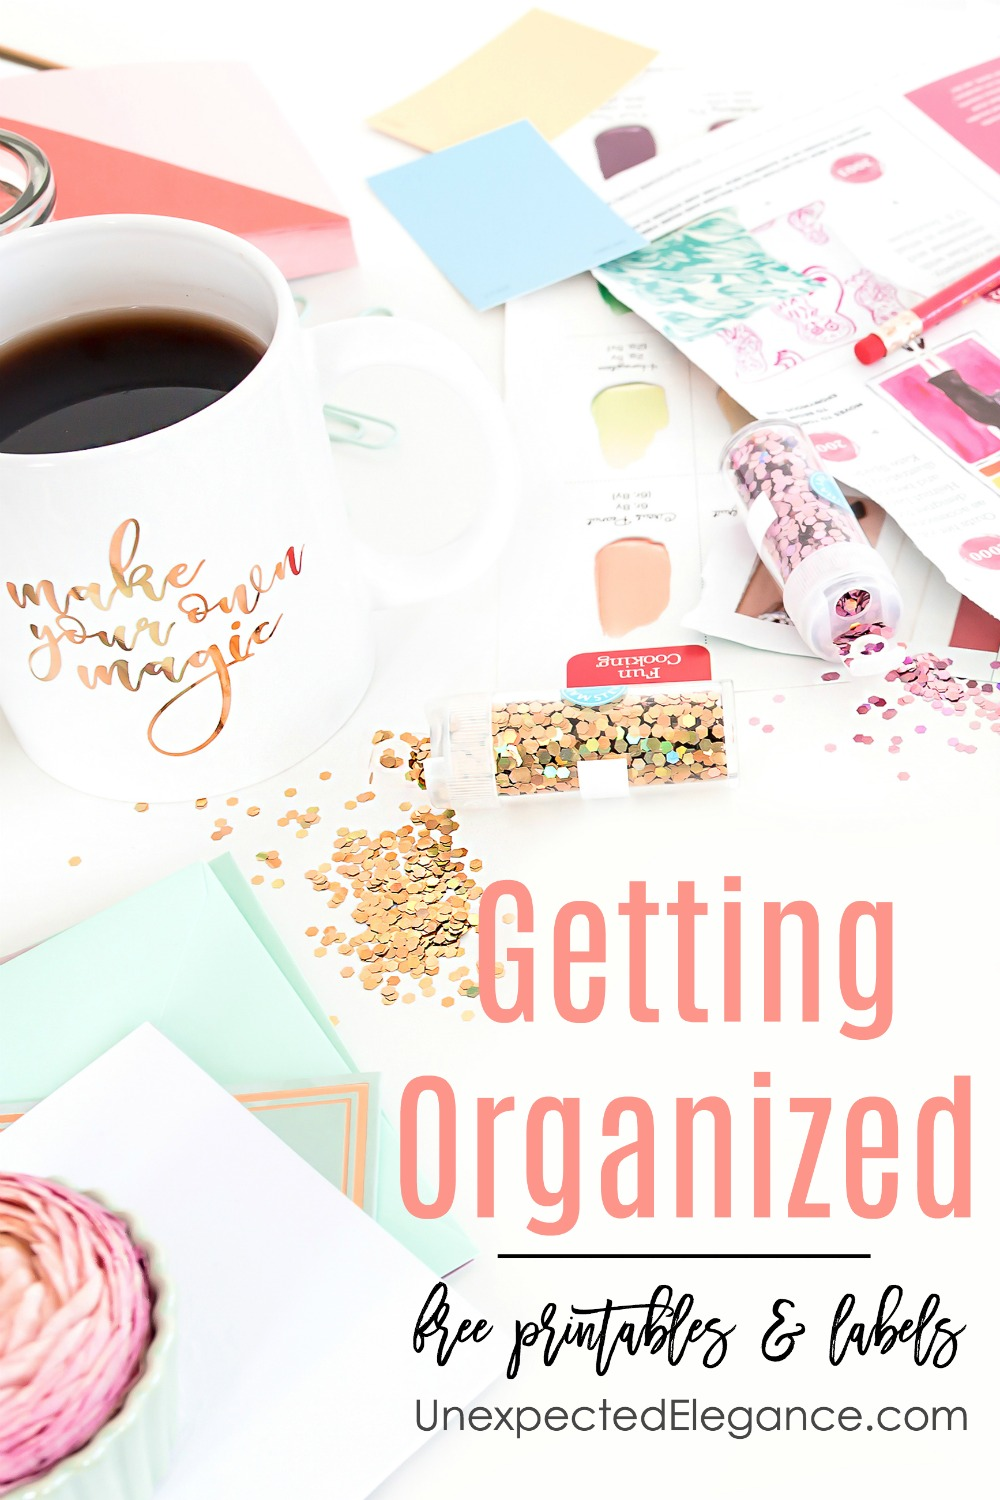 Are you struggling with organization? We are getting organized with free printables and labels to make our lives so much easier!!! Click here for all the resources.